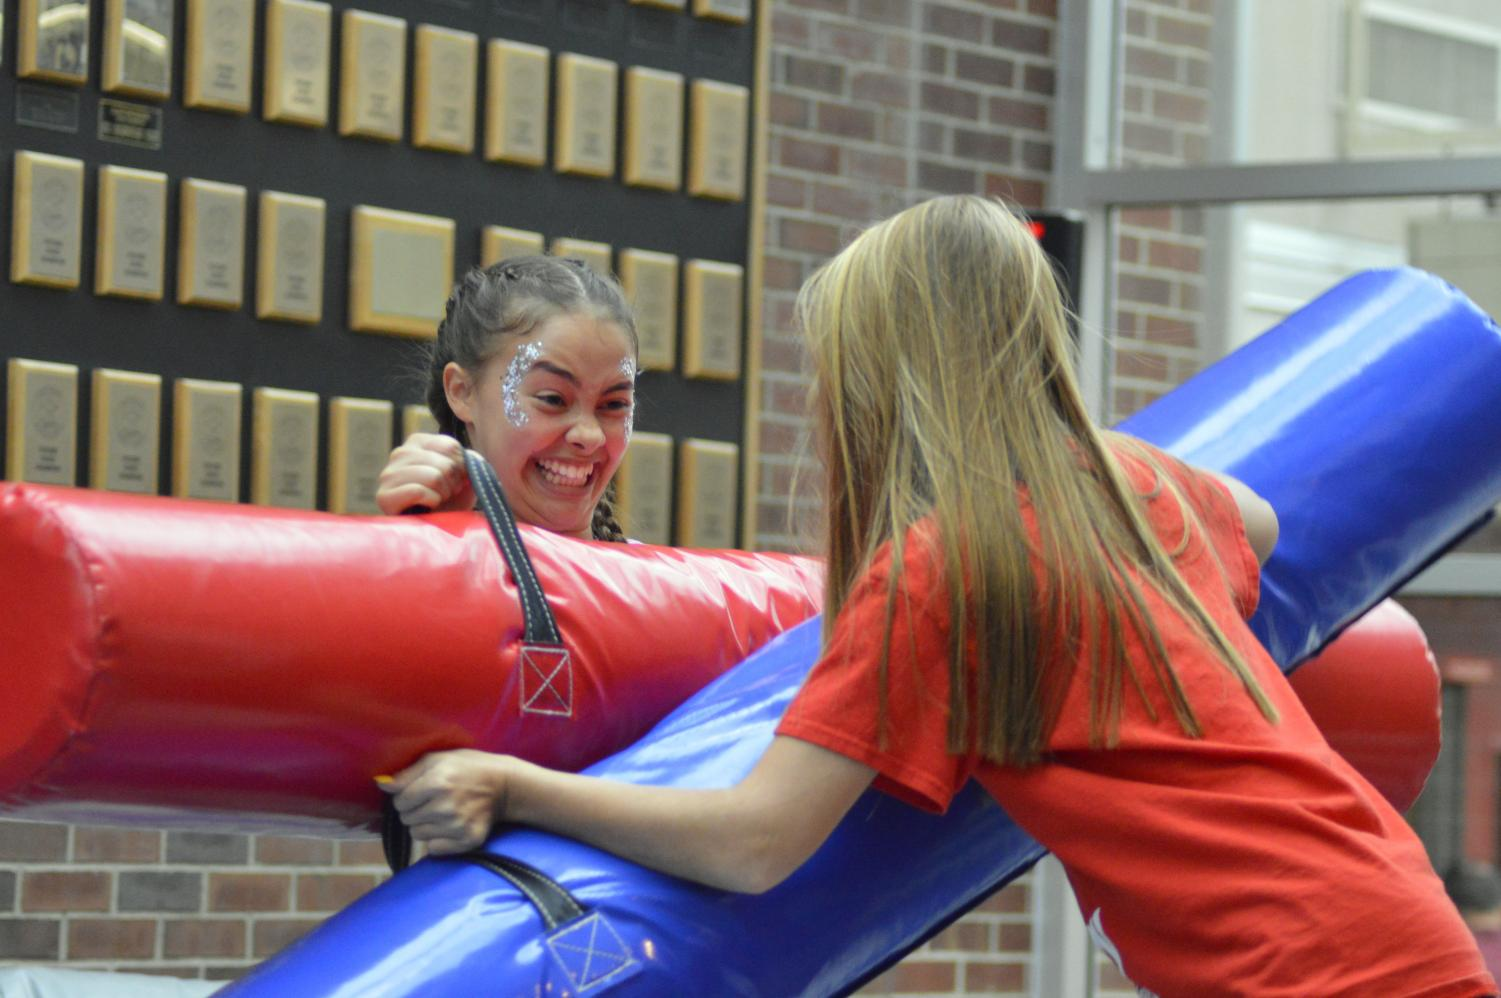 Sophomore Mariah Murillo jousts with sophomore Natalie Davis in the bounce jousting arena.